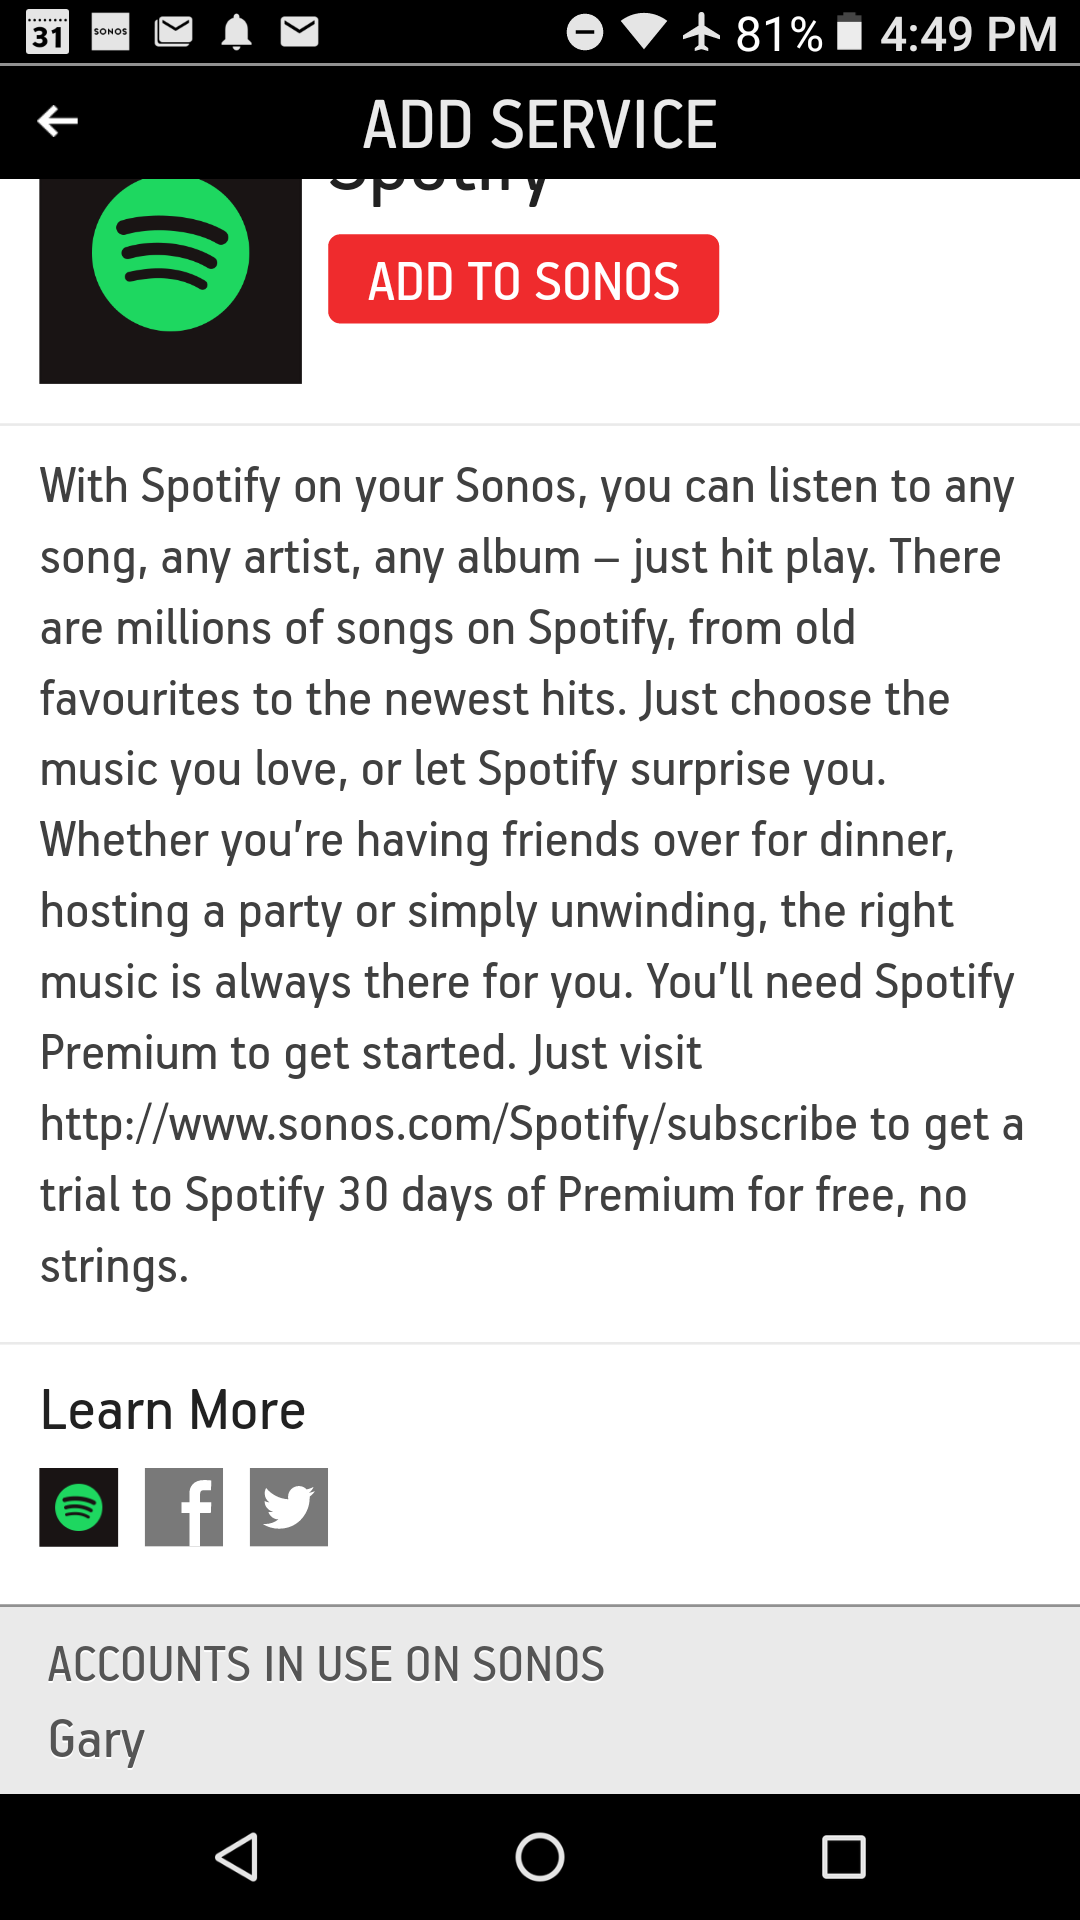 Spotify Family / Different accounts on Sonos possible? | Sonos Community